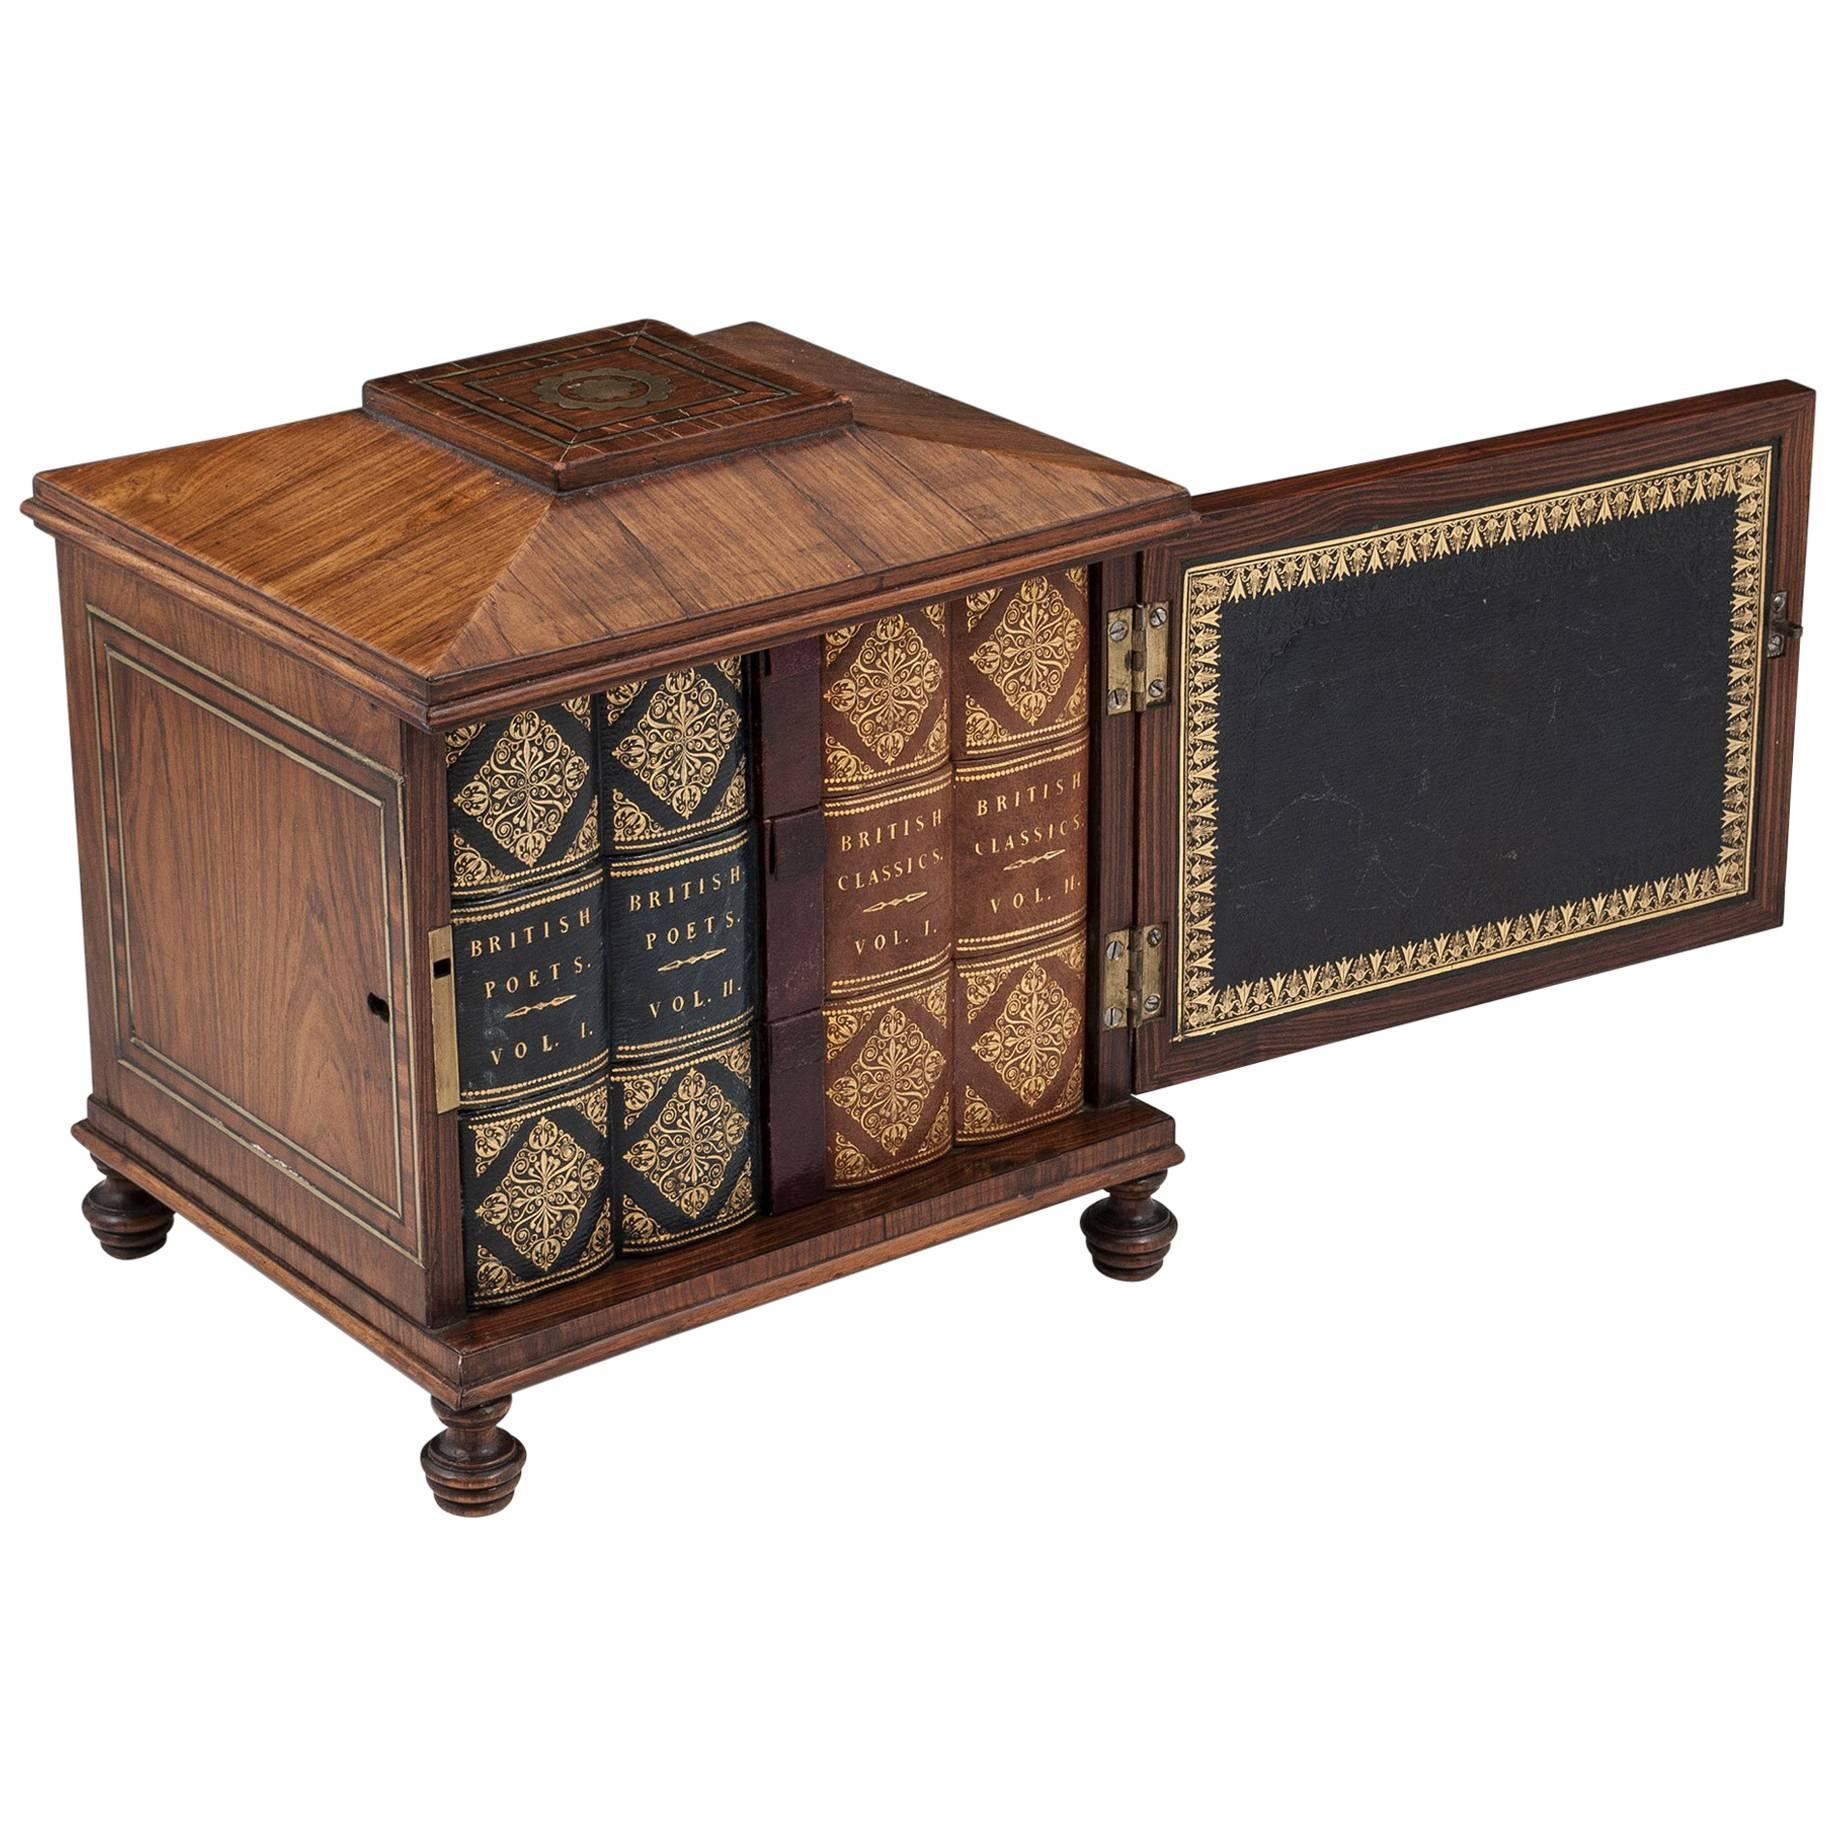 Regency Kingwood Sewing Box / Writing Cabinet, 19th Century For Sale